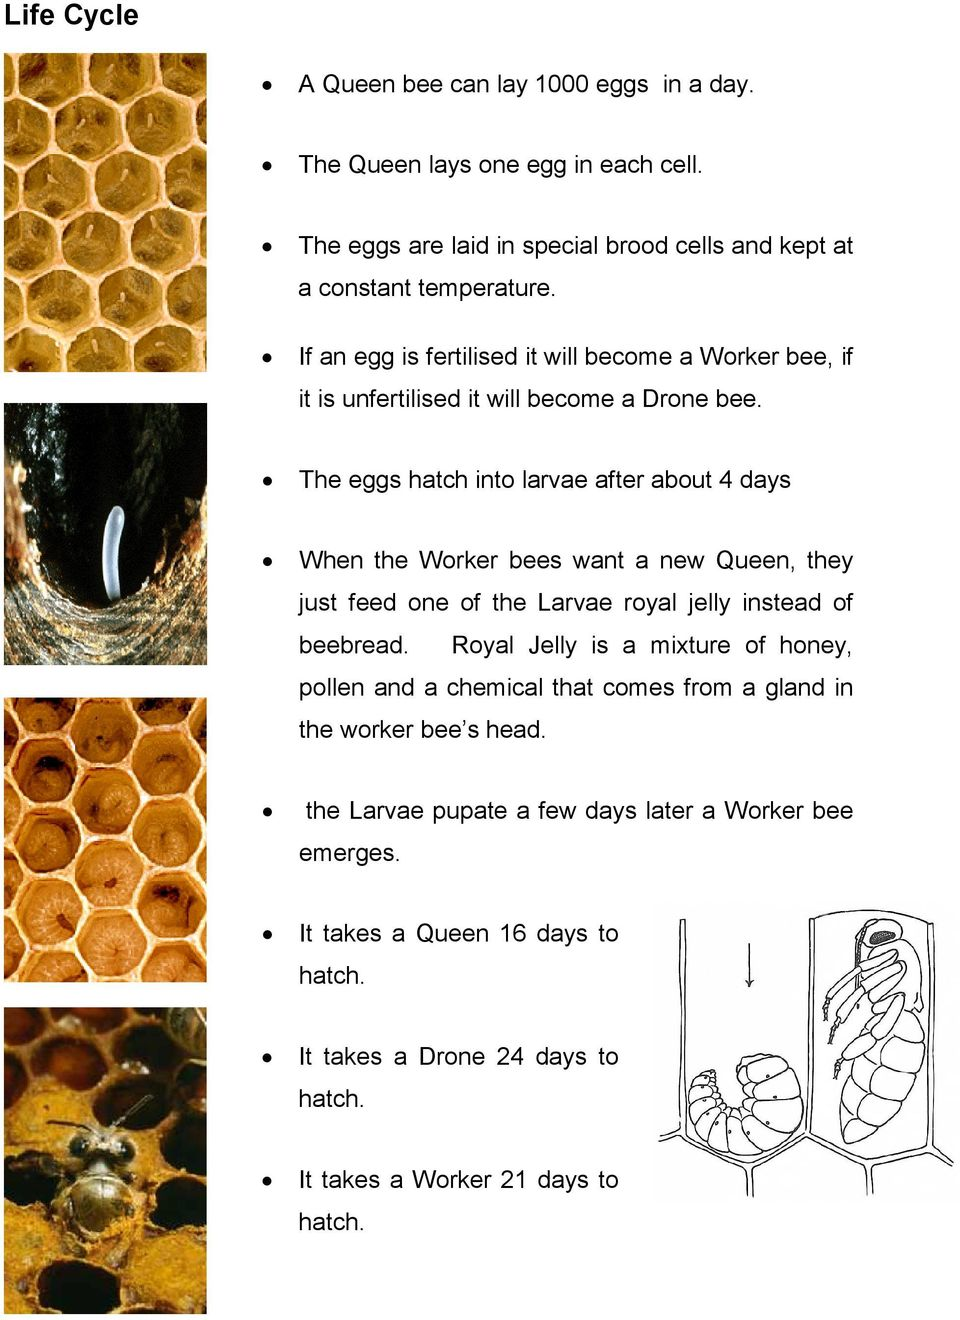 The eggs hatch into larvae after about 4 days When the Worker bees want a new Queen, they just feed one of the Larvae royal jelly instead of beebread.